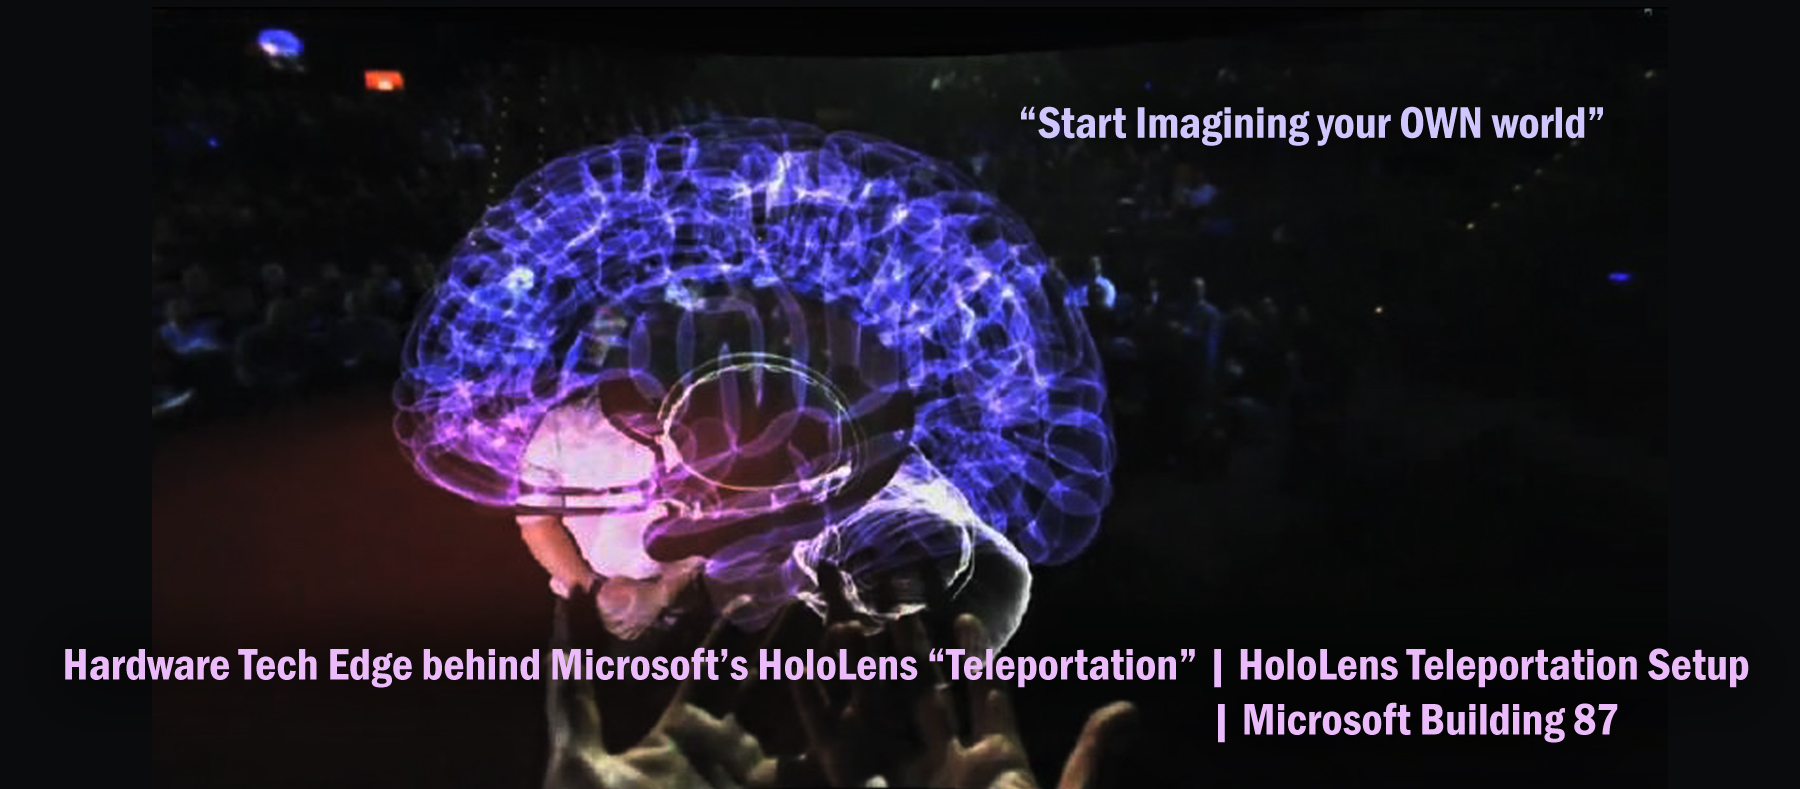 "Hardware Tech Edge behind Microsoft's HoloLens ""Teleportation"""